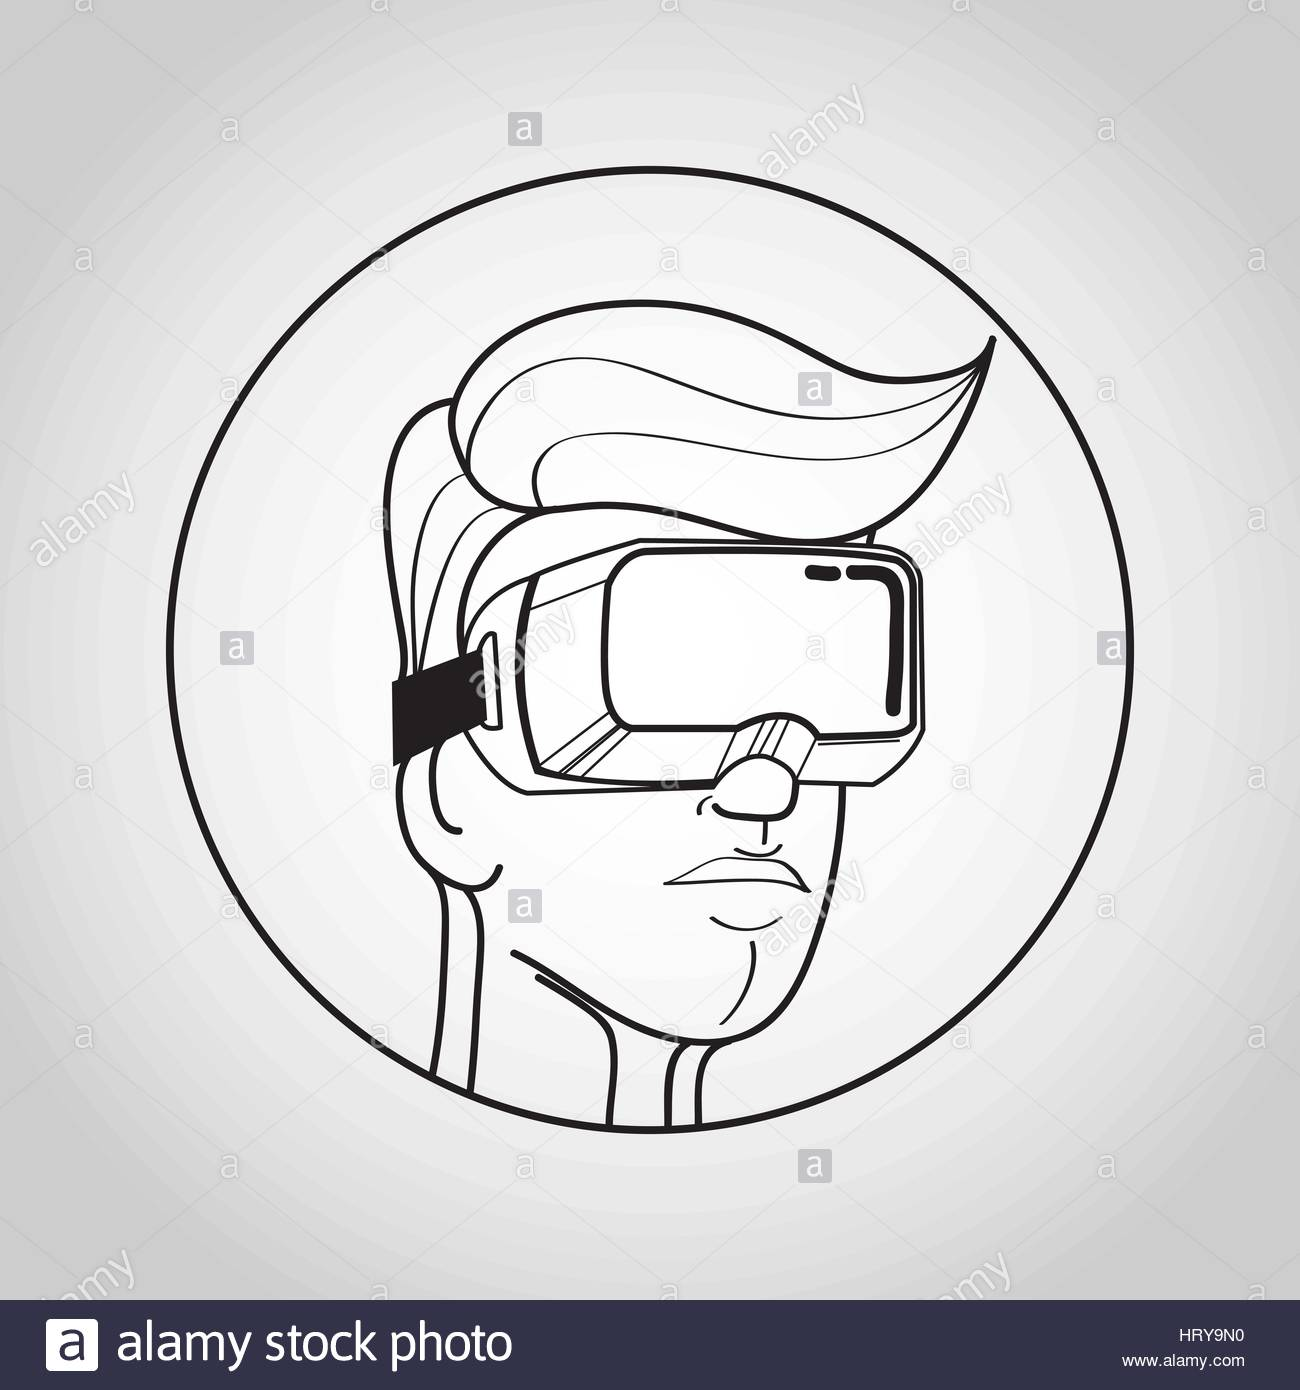 1300x1390 Vr Glasses For Smartphone Vector Illustration. Virtual Reality